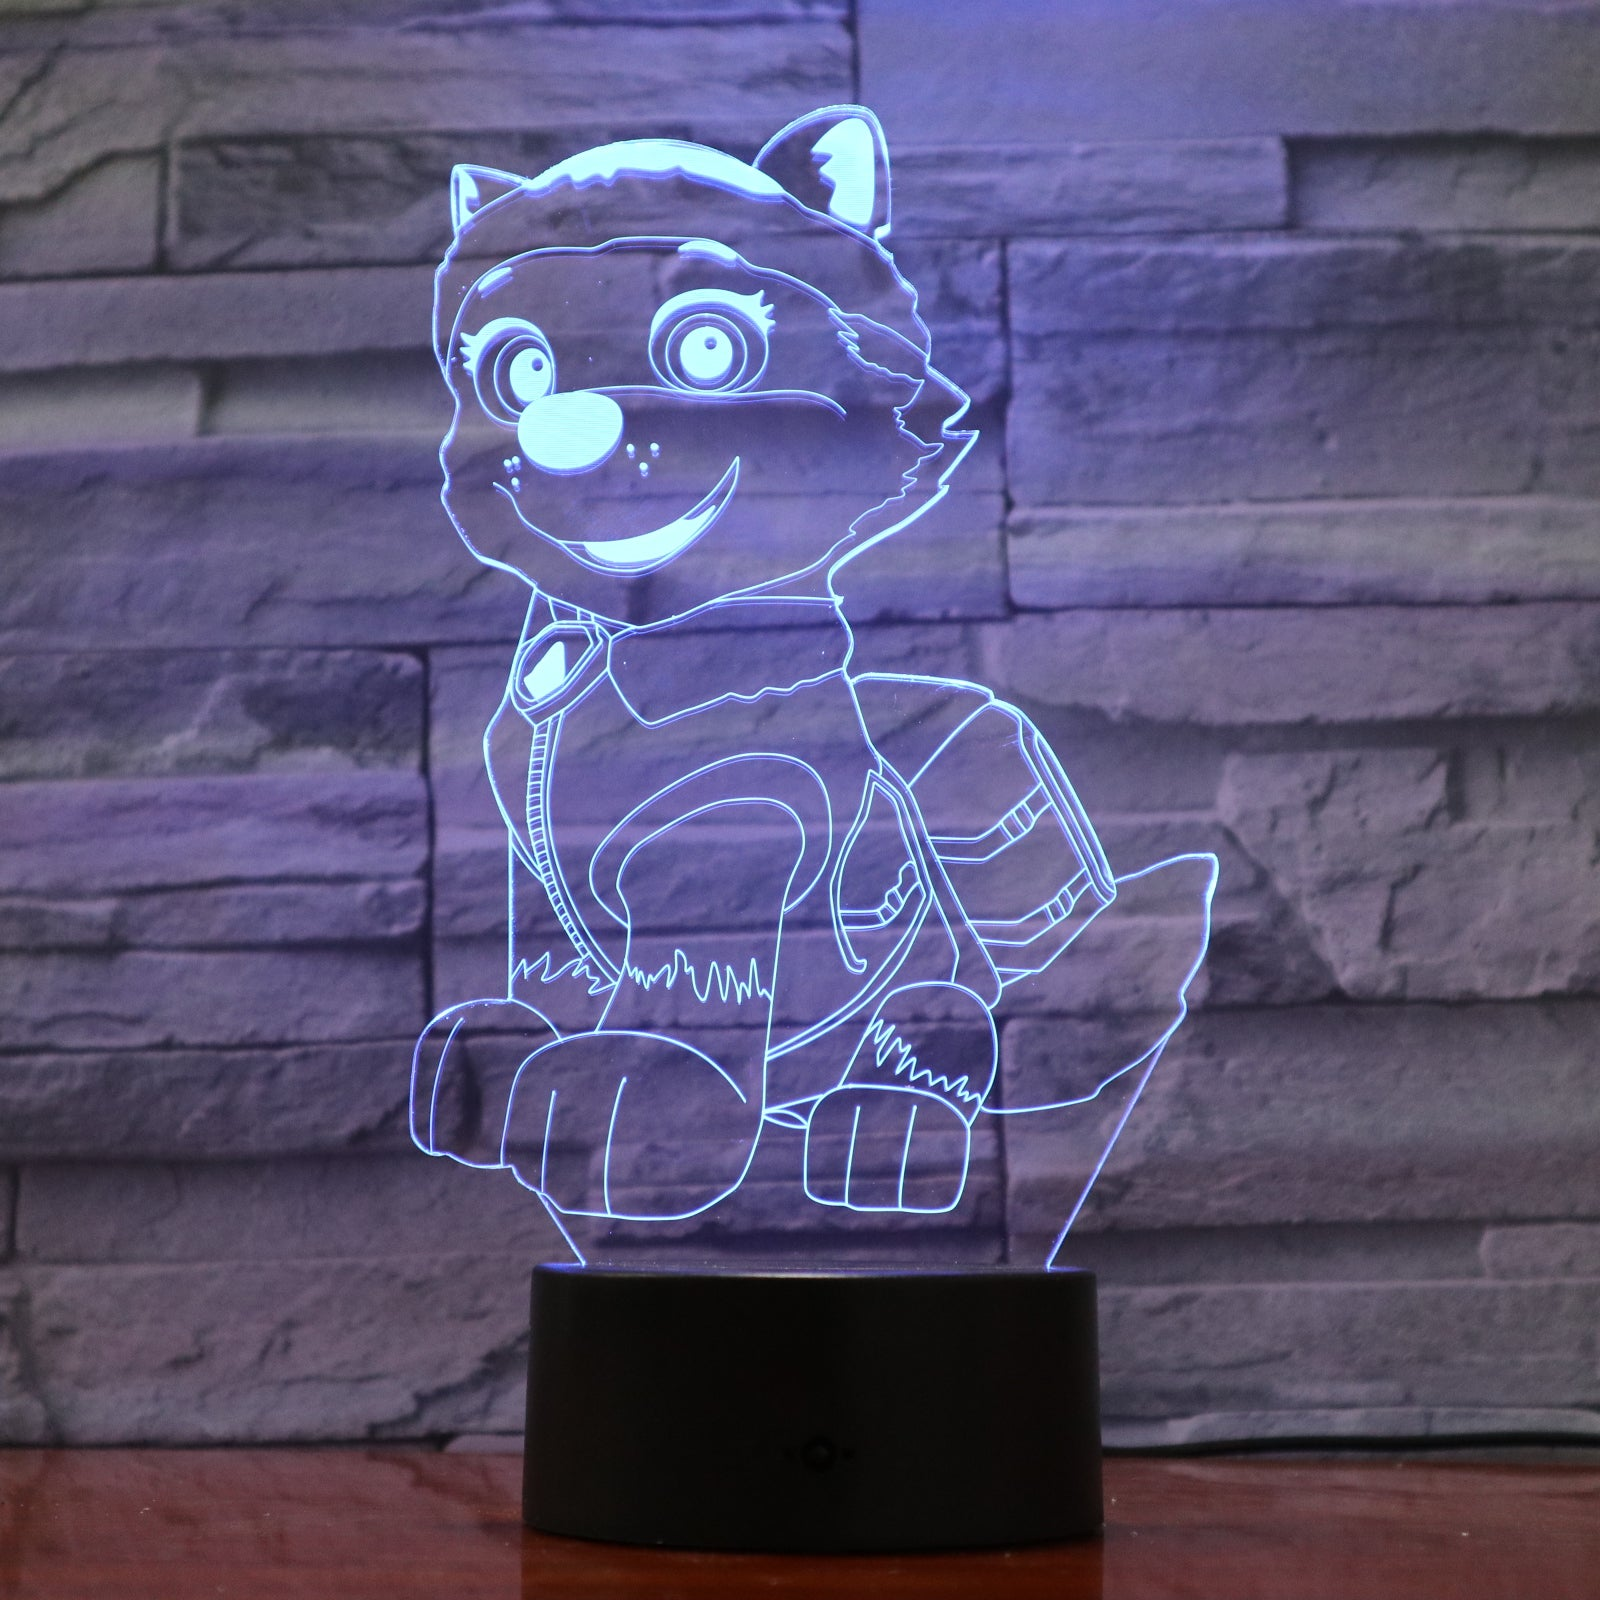 Dog 2 - 3D Optical Illusion LED Lamp Hologram